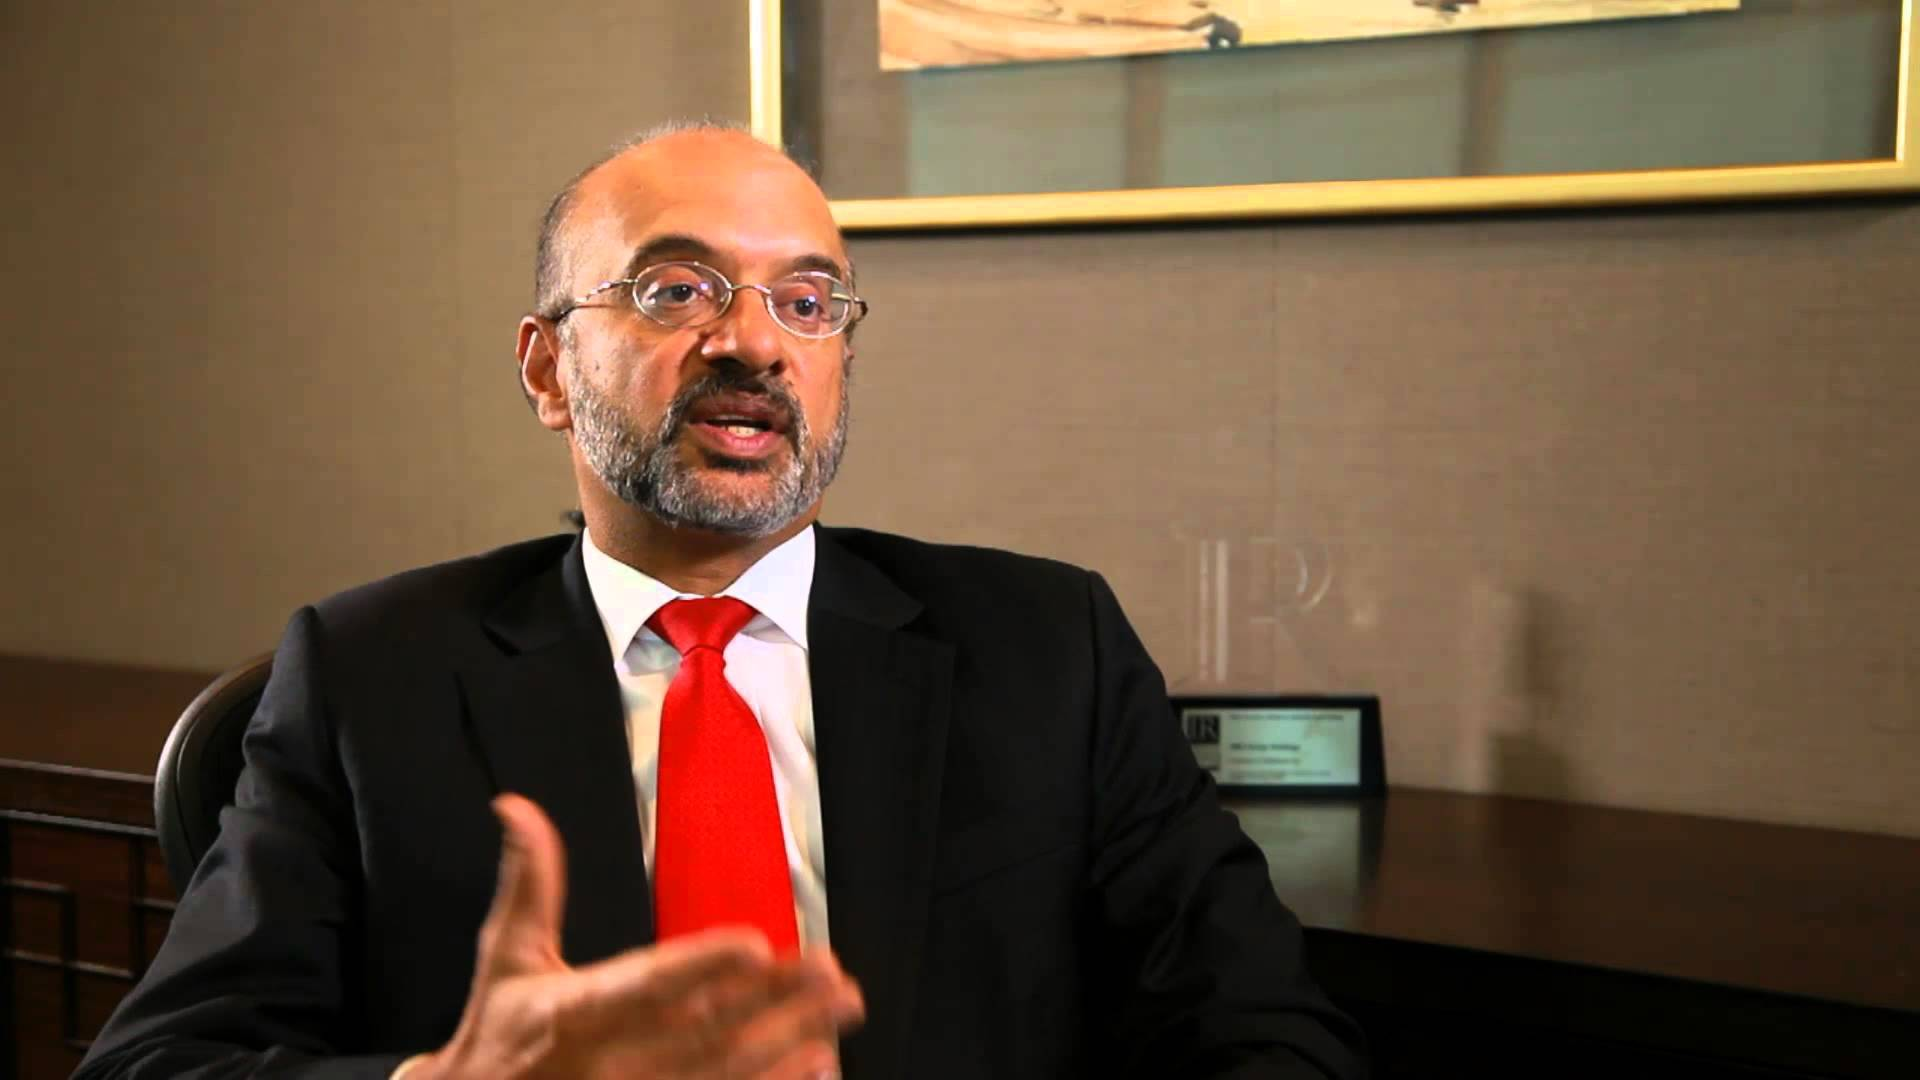 DBS CEO Piyush Gupta. Photo courtesy: YouTube